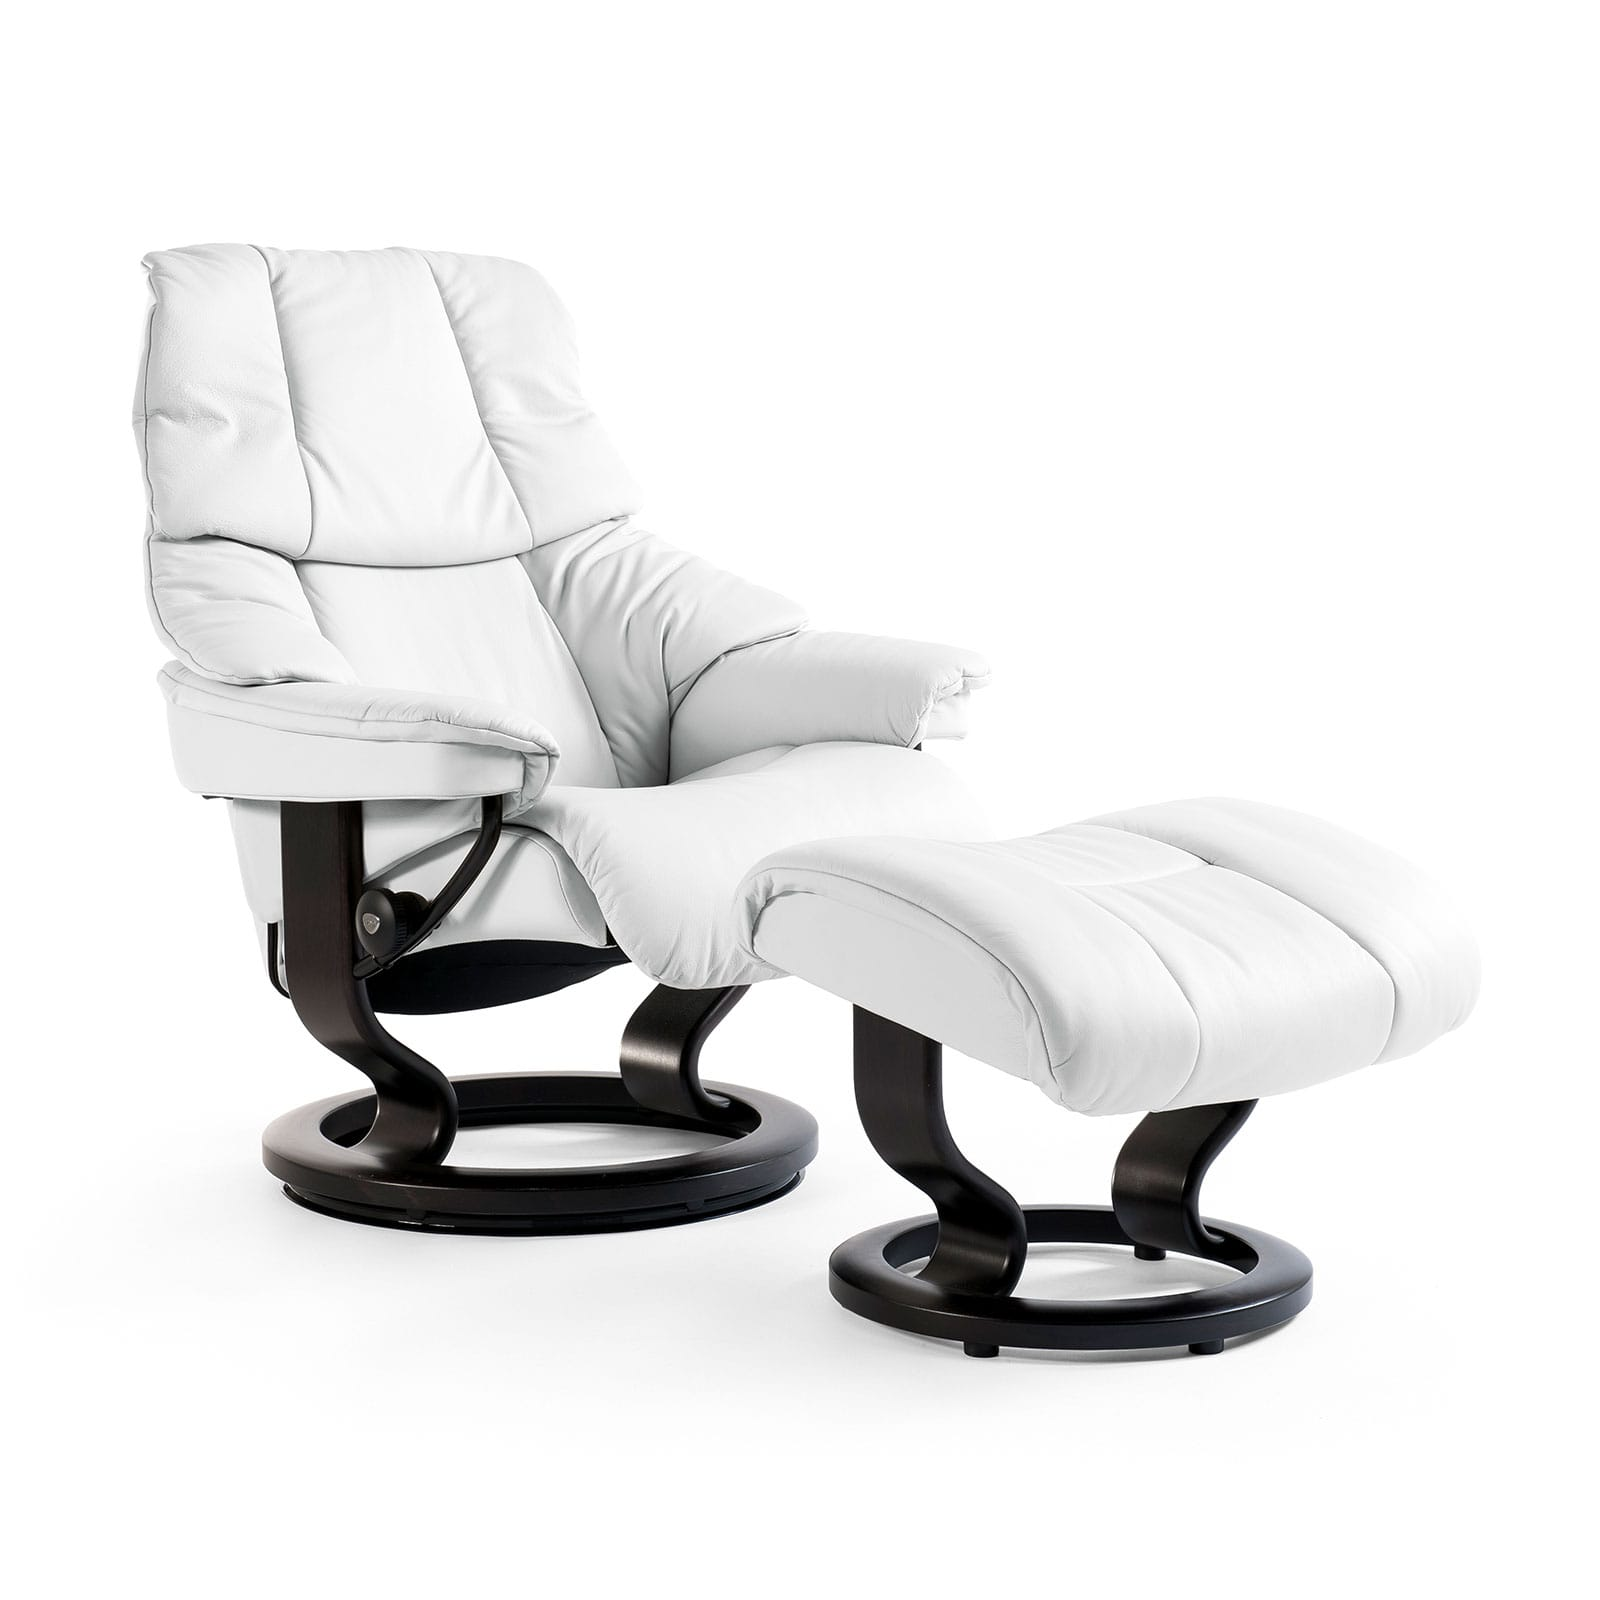 Stressless Sessel Berlin Stressless Sessel Reno Batick Snow Mit Hocker Stressless